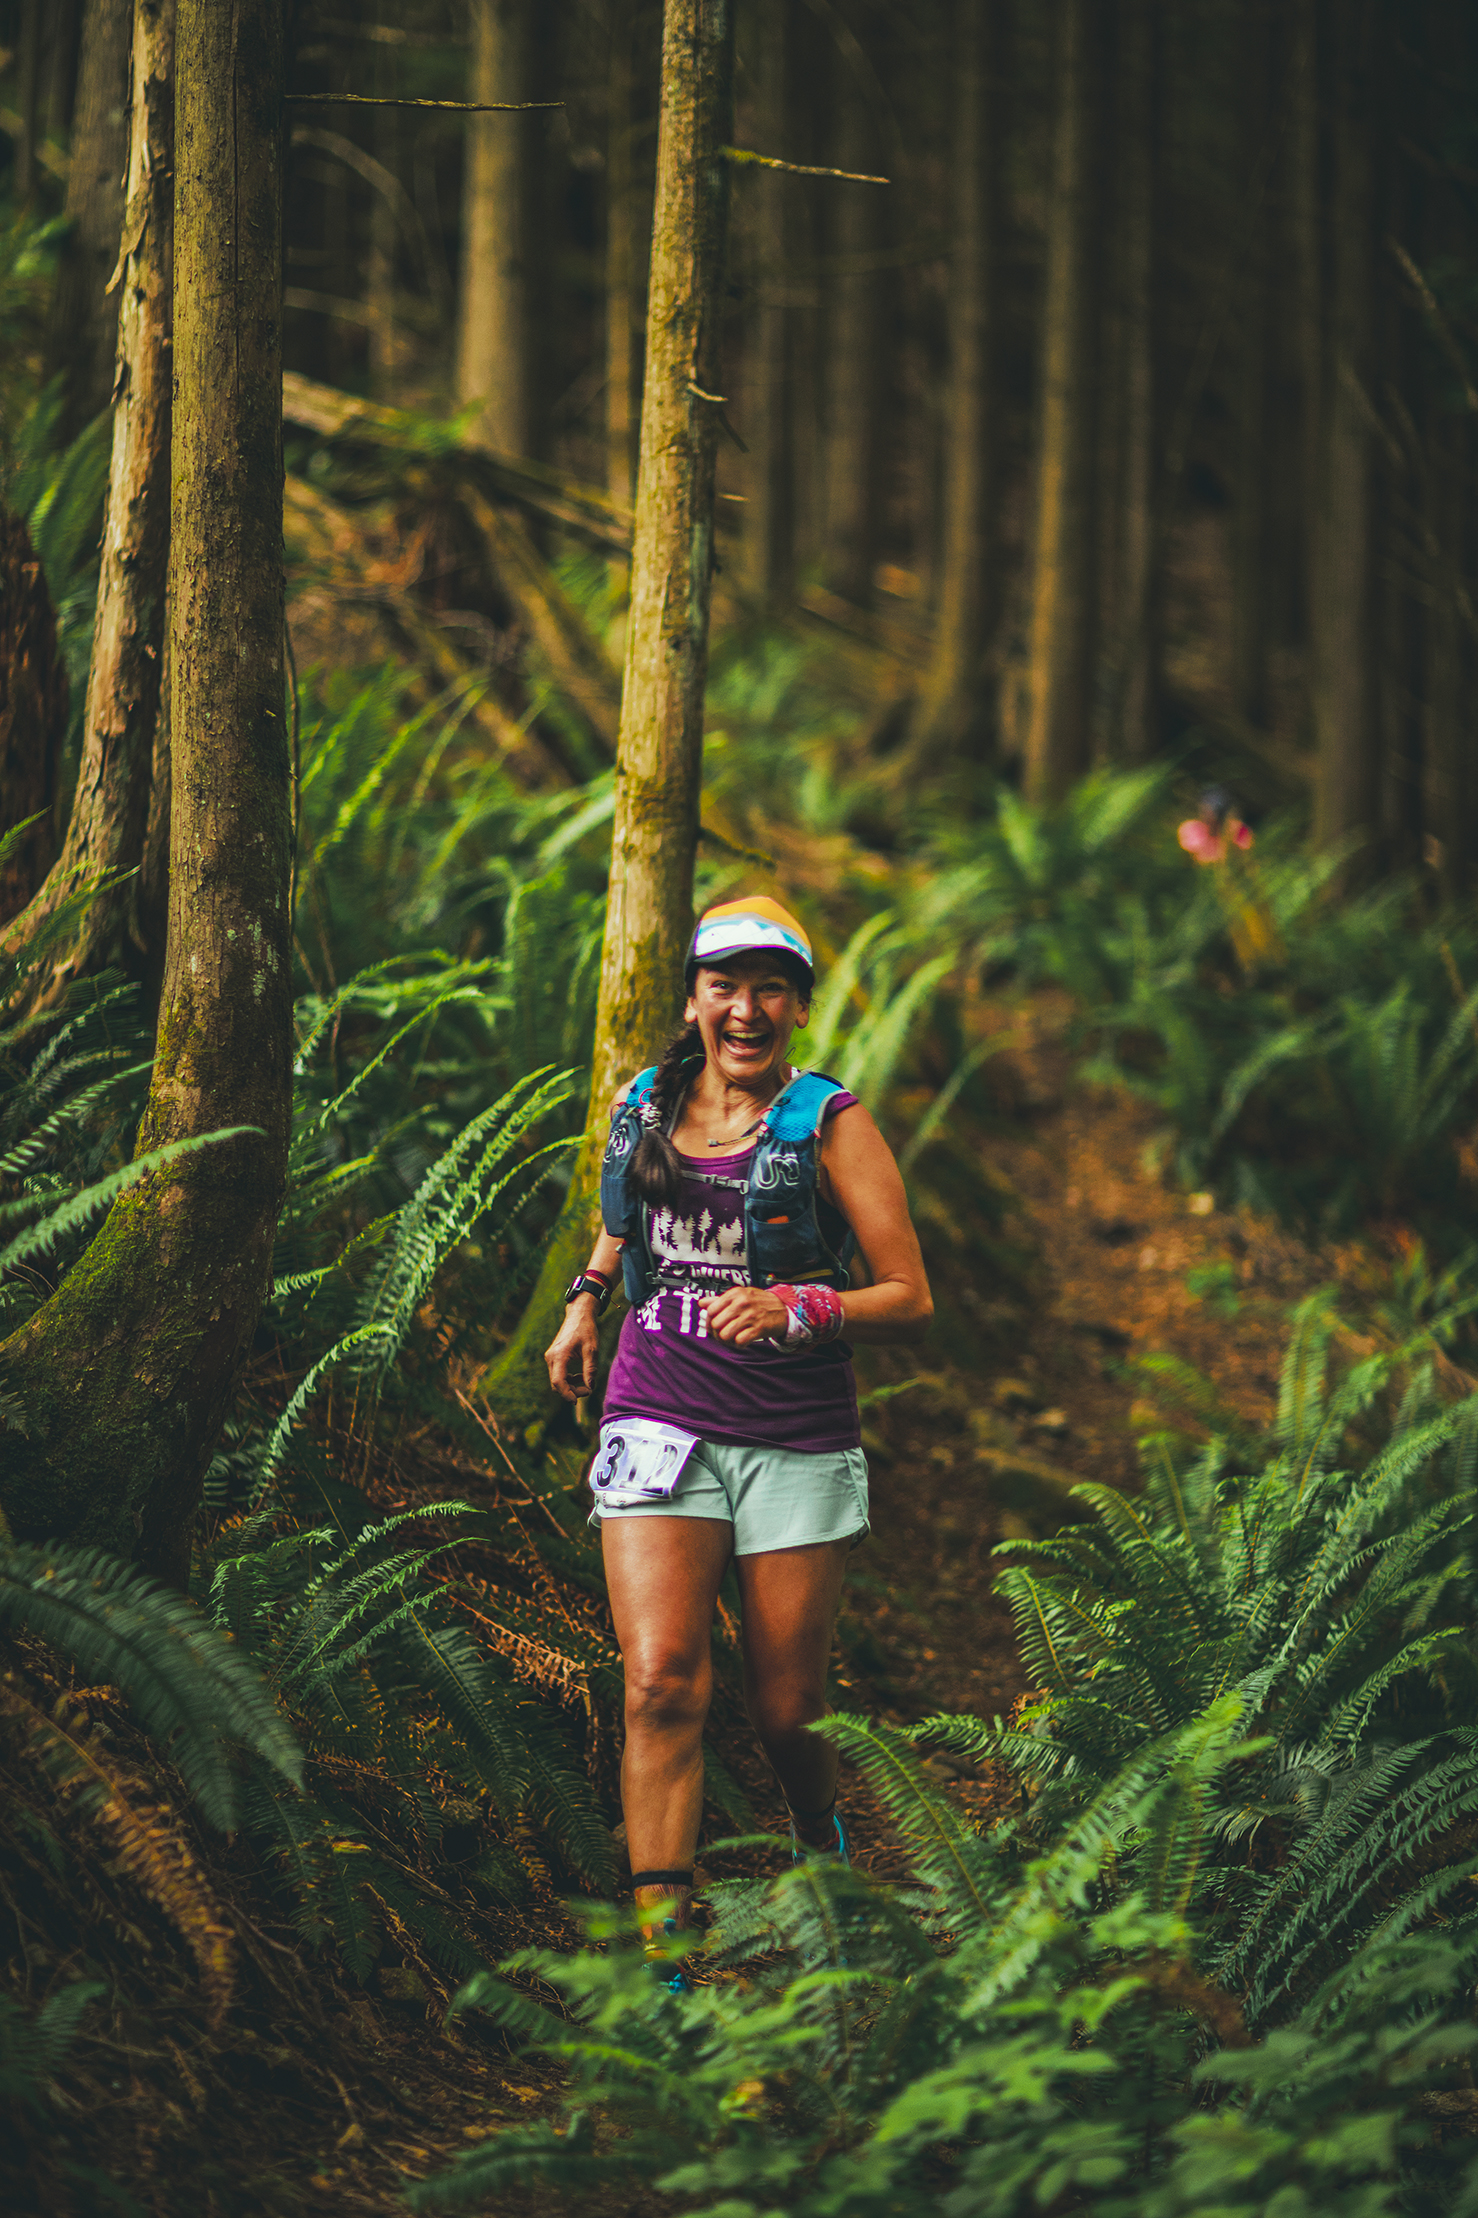 Fraser Valley Trail Races - Bear Mountain - IMG2_2324 by  Brice Ferre Studio - Vancouver Portrait Adventure and Athlete Photographer.jpg